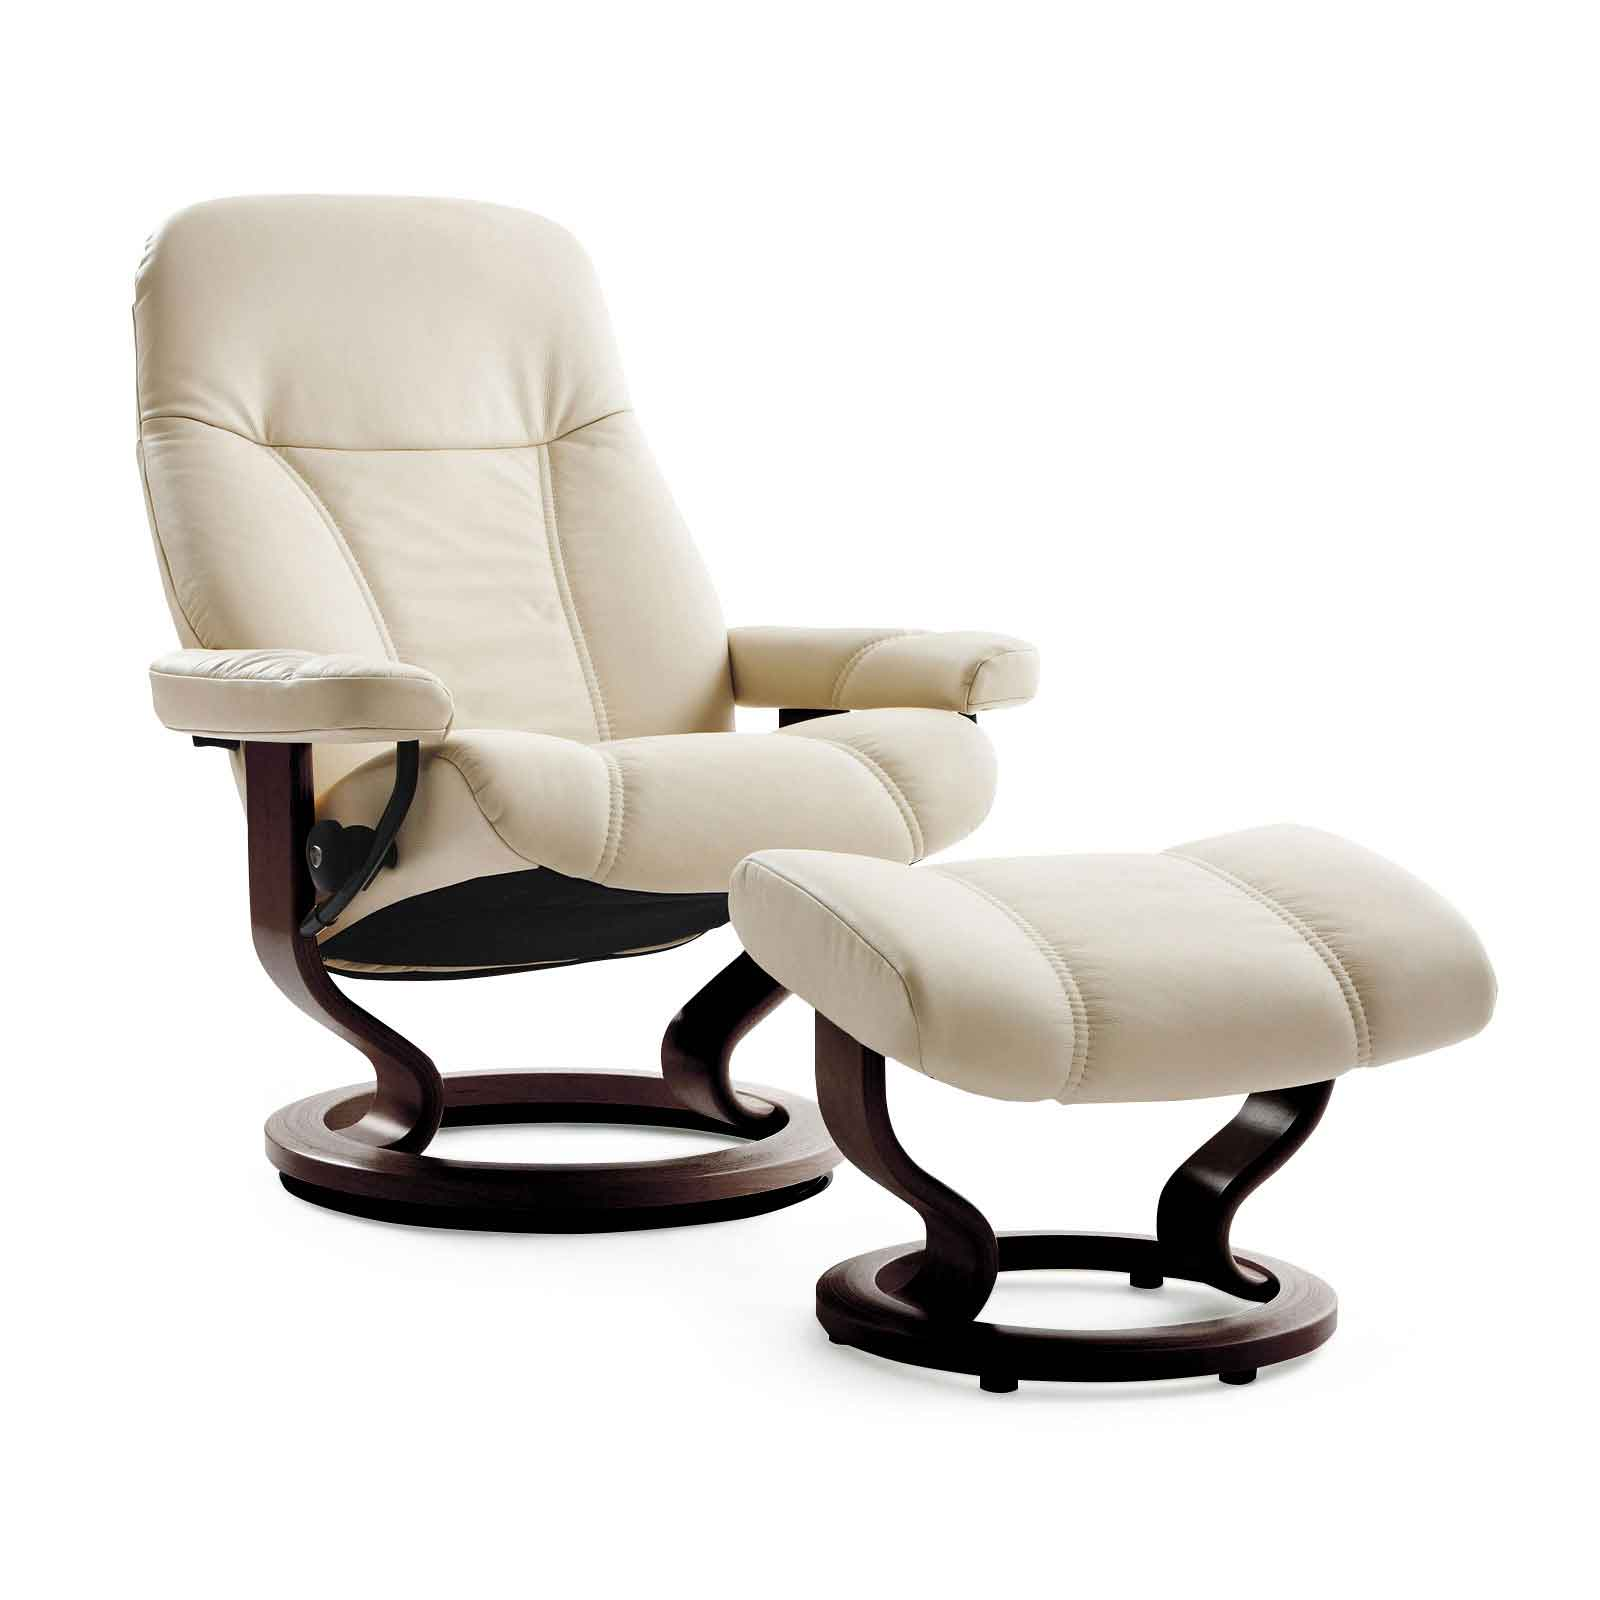 stressless sessel consul m batick cream mit hocker. Black Bedroom Furniture Sets. Home Design Ideas